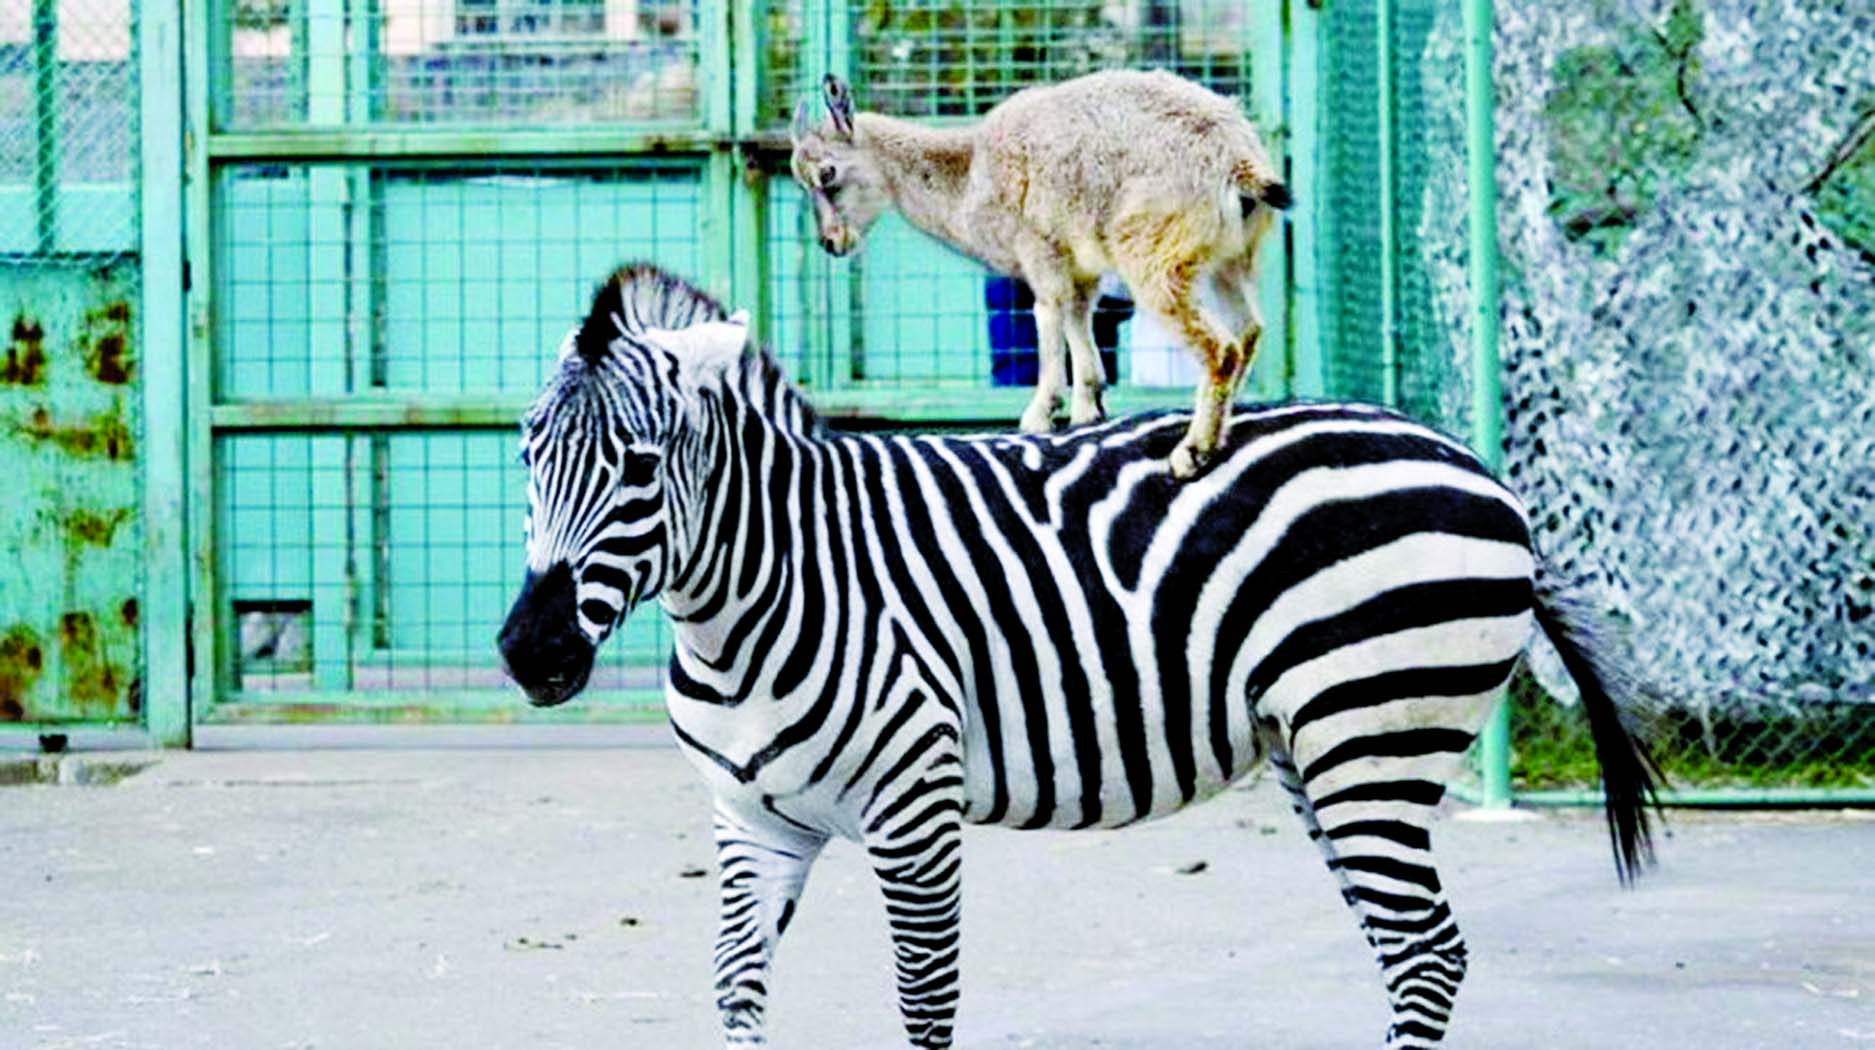 Goat getting on zebra's back going to Bremen Town?